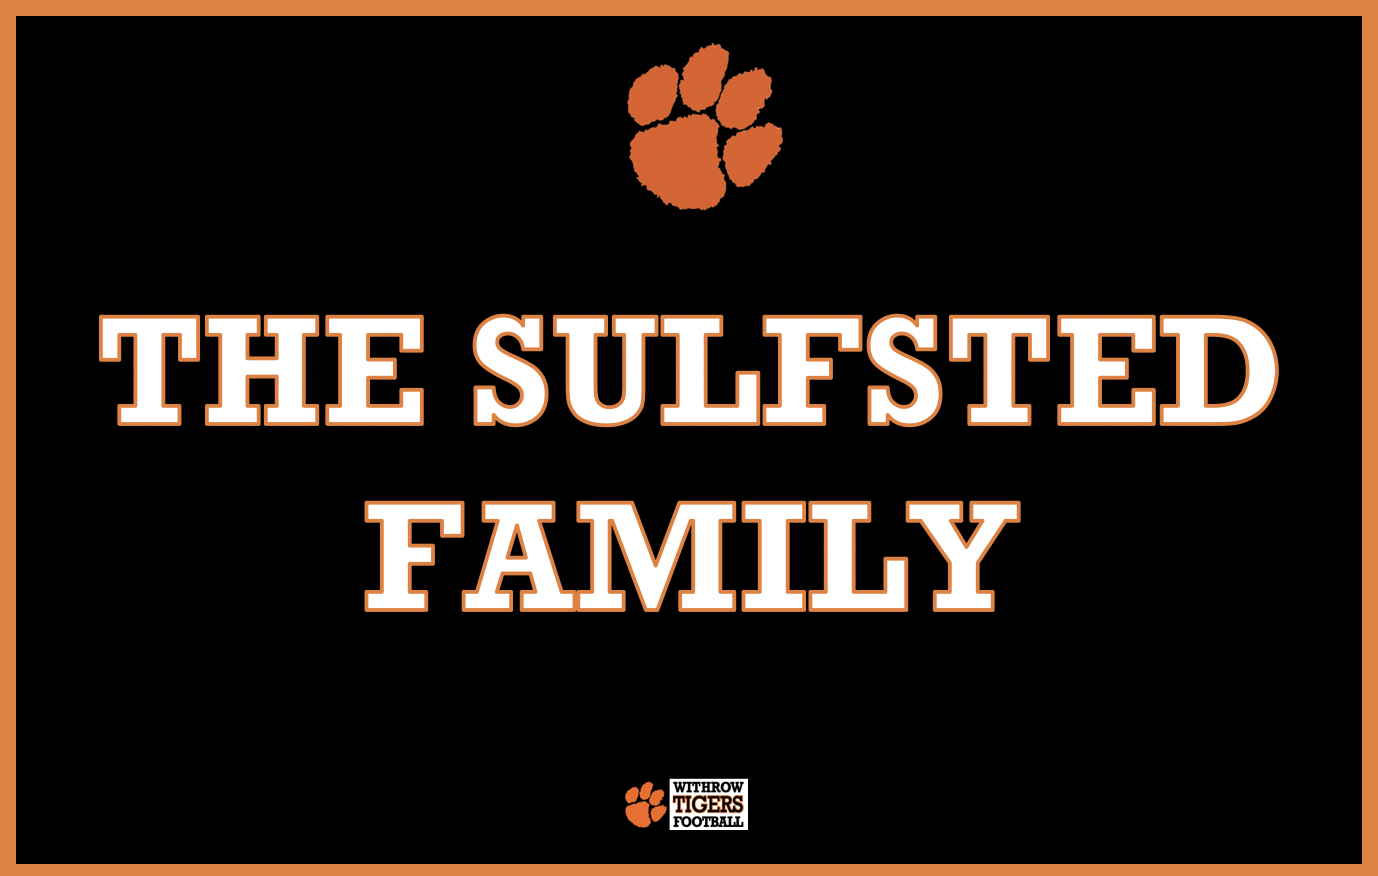 The Sulfsted Family